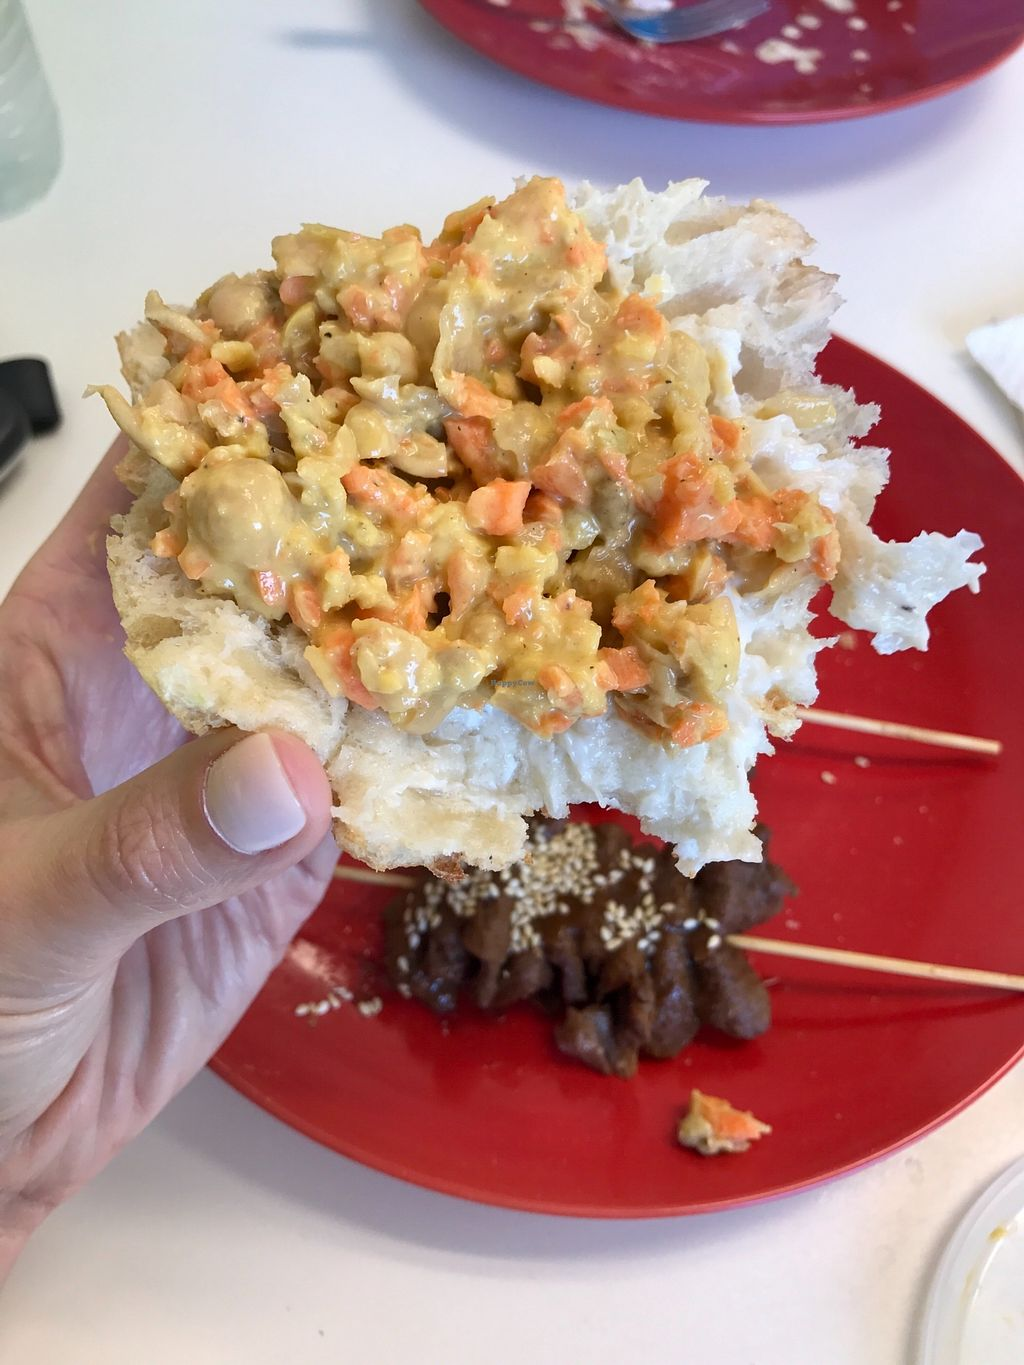 """Photo of Vegan to Goloka  by <a href=""""/members/profile/melissapedroso"""">melissapedroso</a> <br/>Tuna salad <br/> October 31, 2017  - <a href='/contact/abuse/image/35589/320365'>Report</a>"""